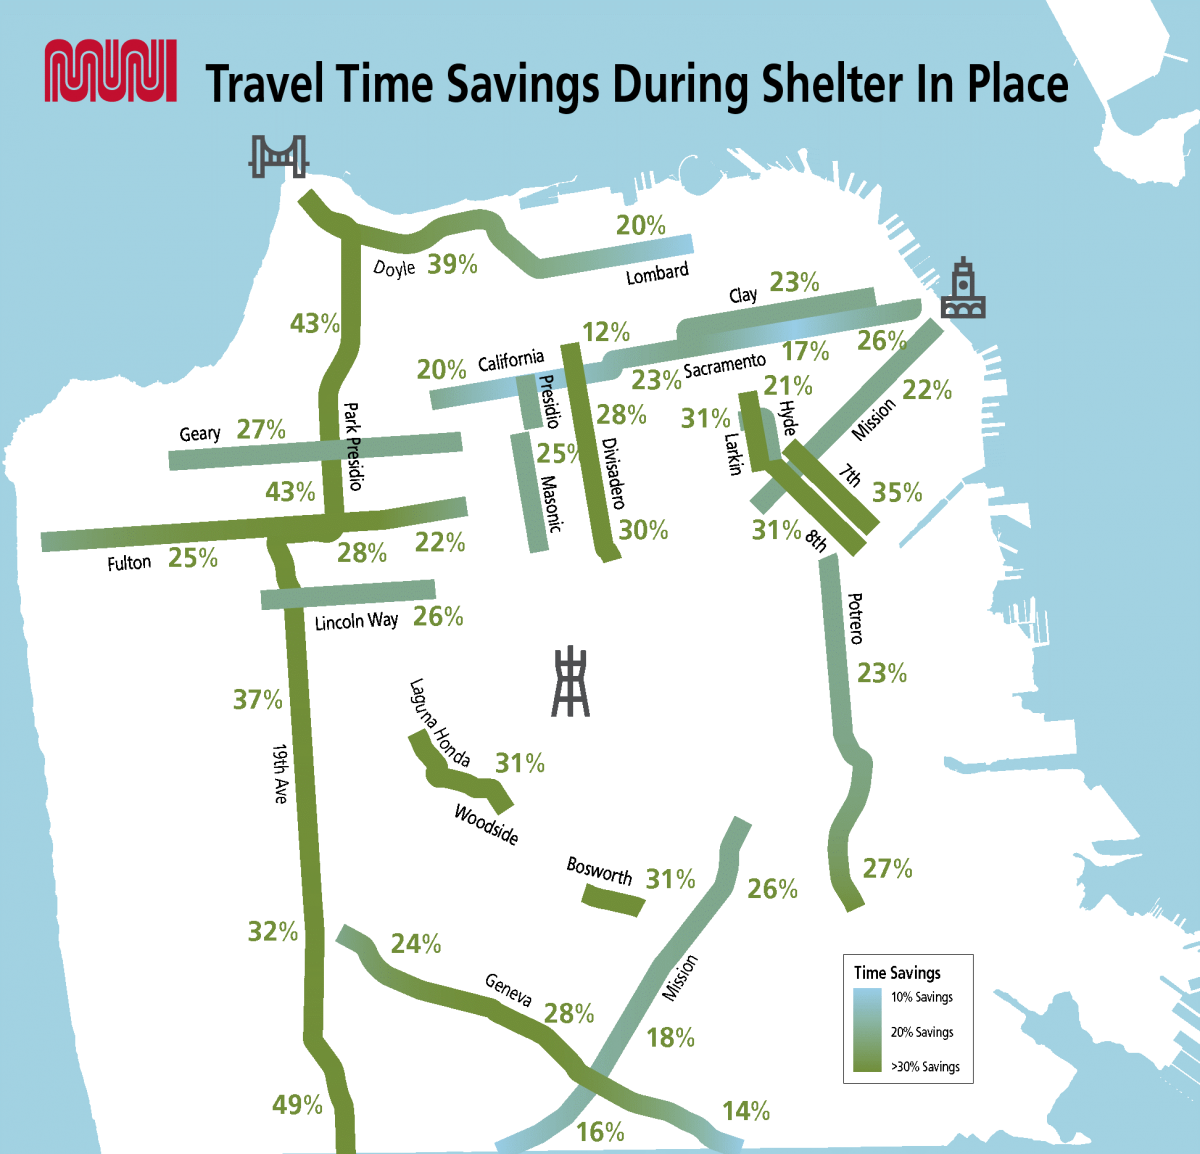 Map showing Muni travel time savings on several corridors during shelter-in-place